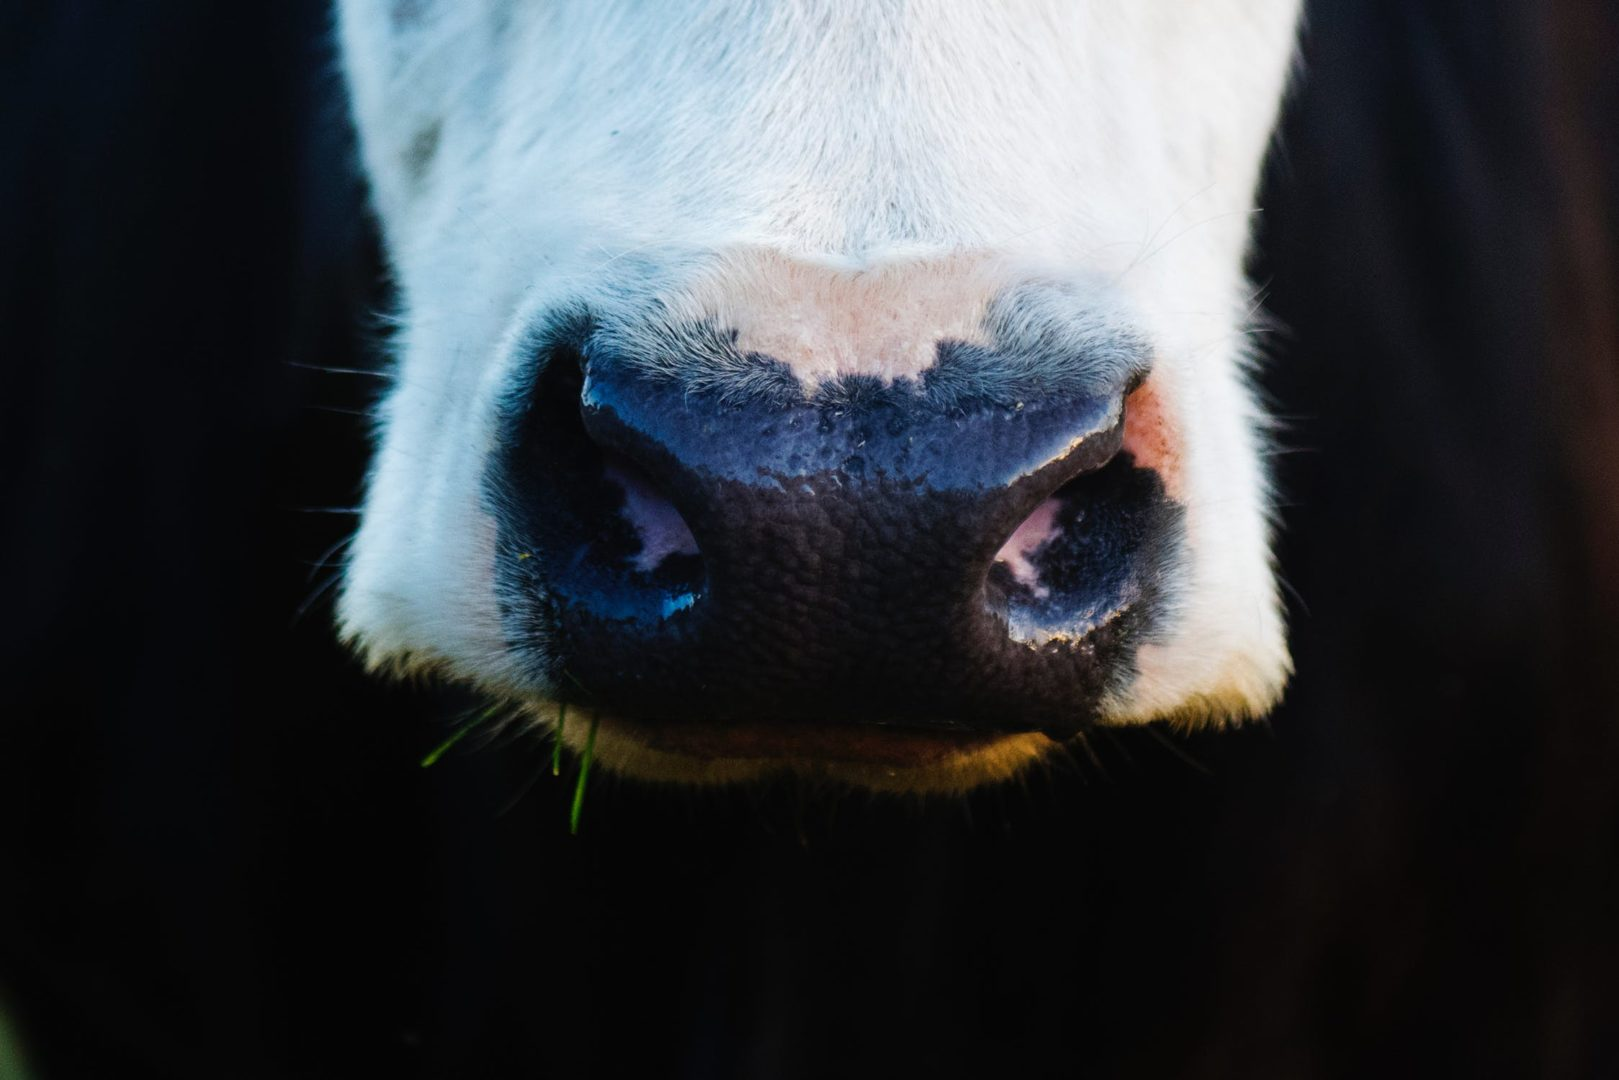 Close up of dairy cow nose